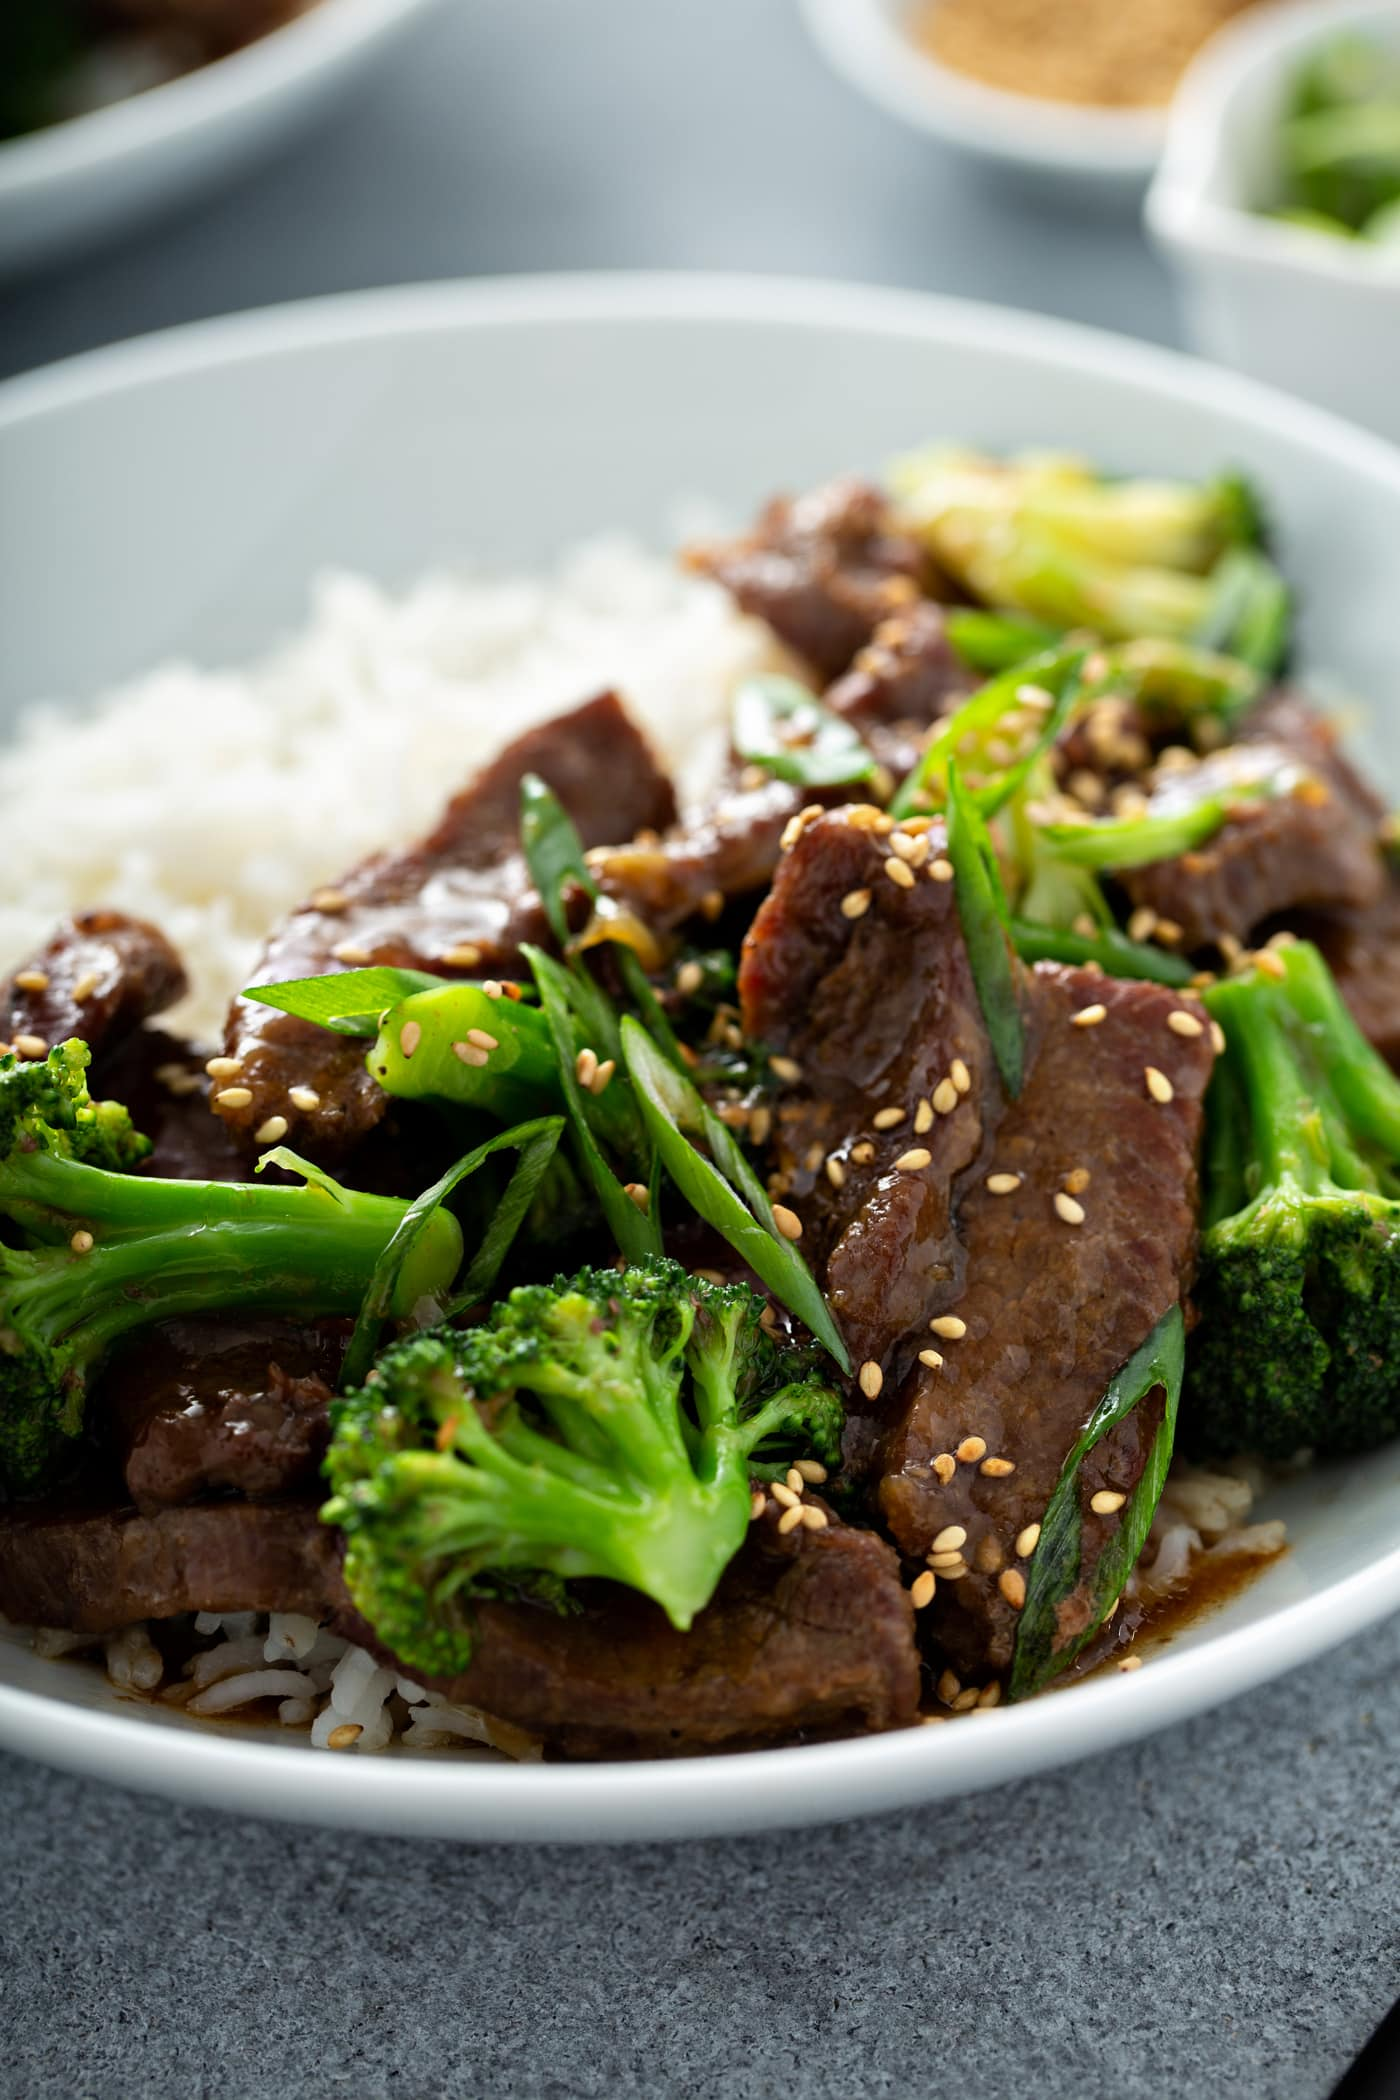 A photo of a white bowl of beef and broccoli garnished with toasted sesame seeds and green onions.